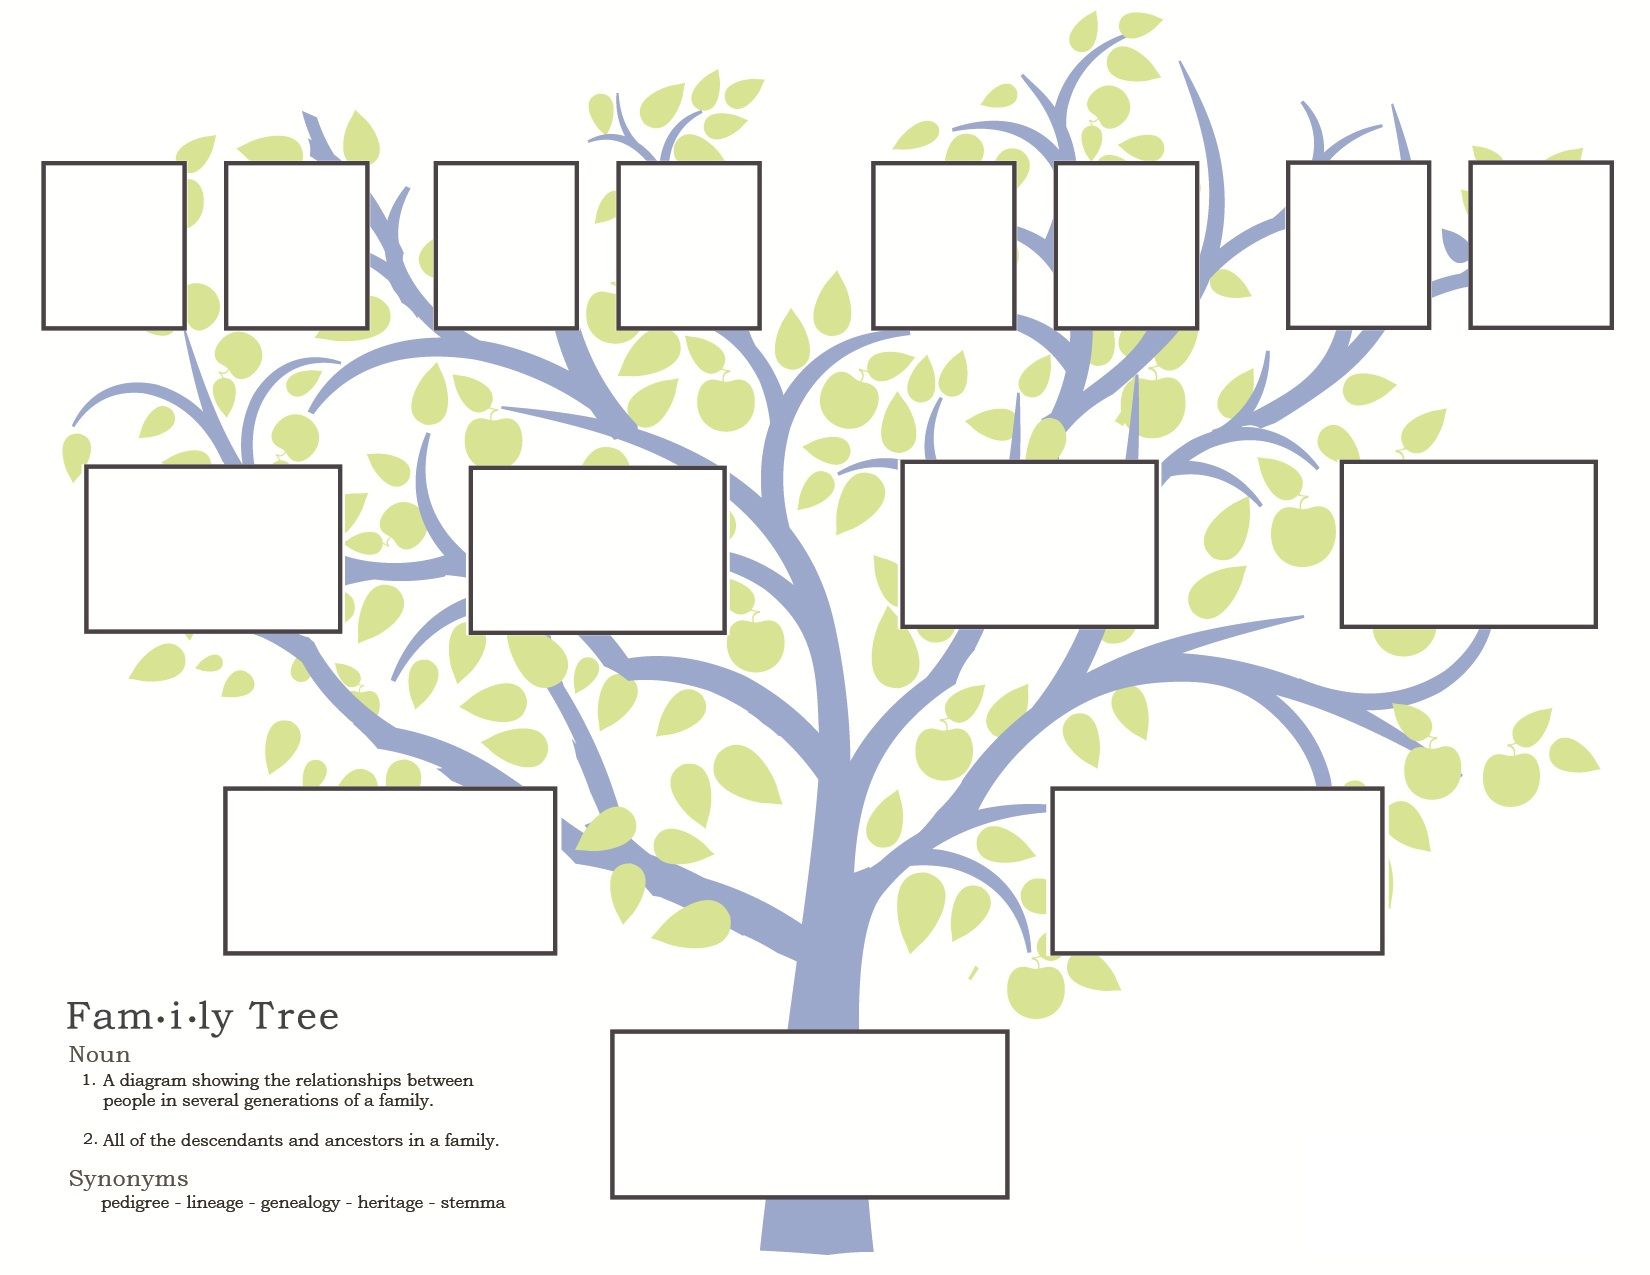 17 Best ideas about Printable Family Tree on Pinterest | Family ...